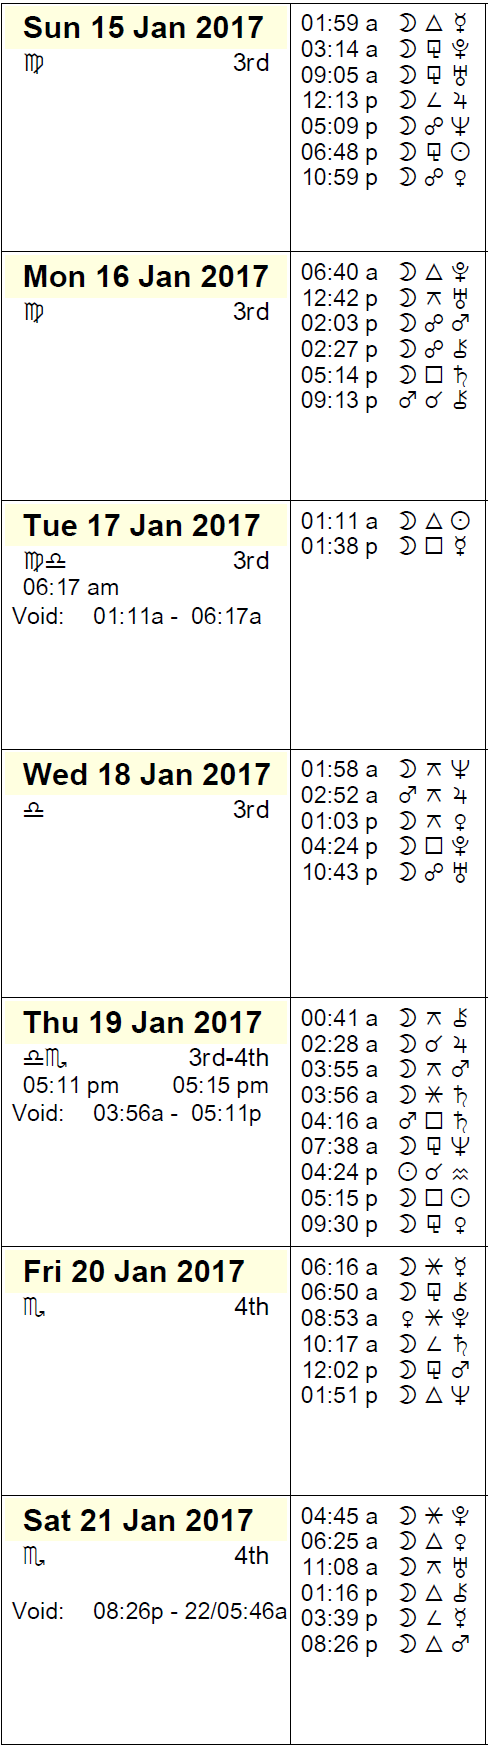 This Week in Astrology Calendar for January 15 to 21, 2017